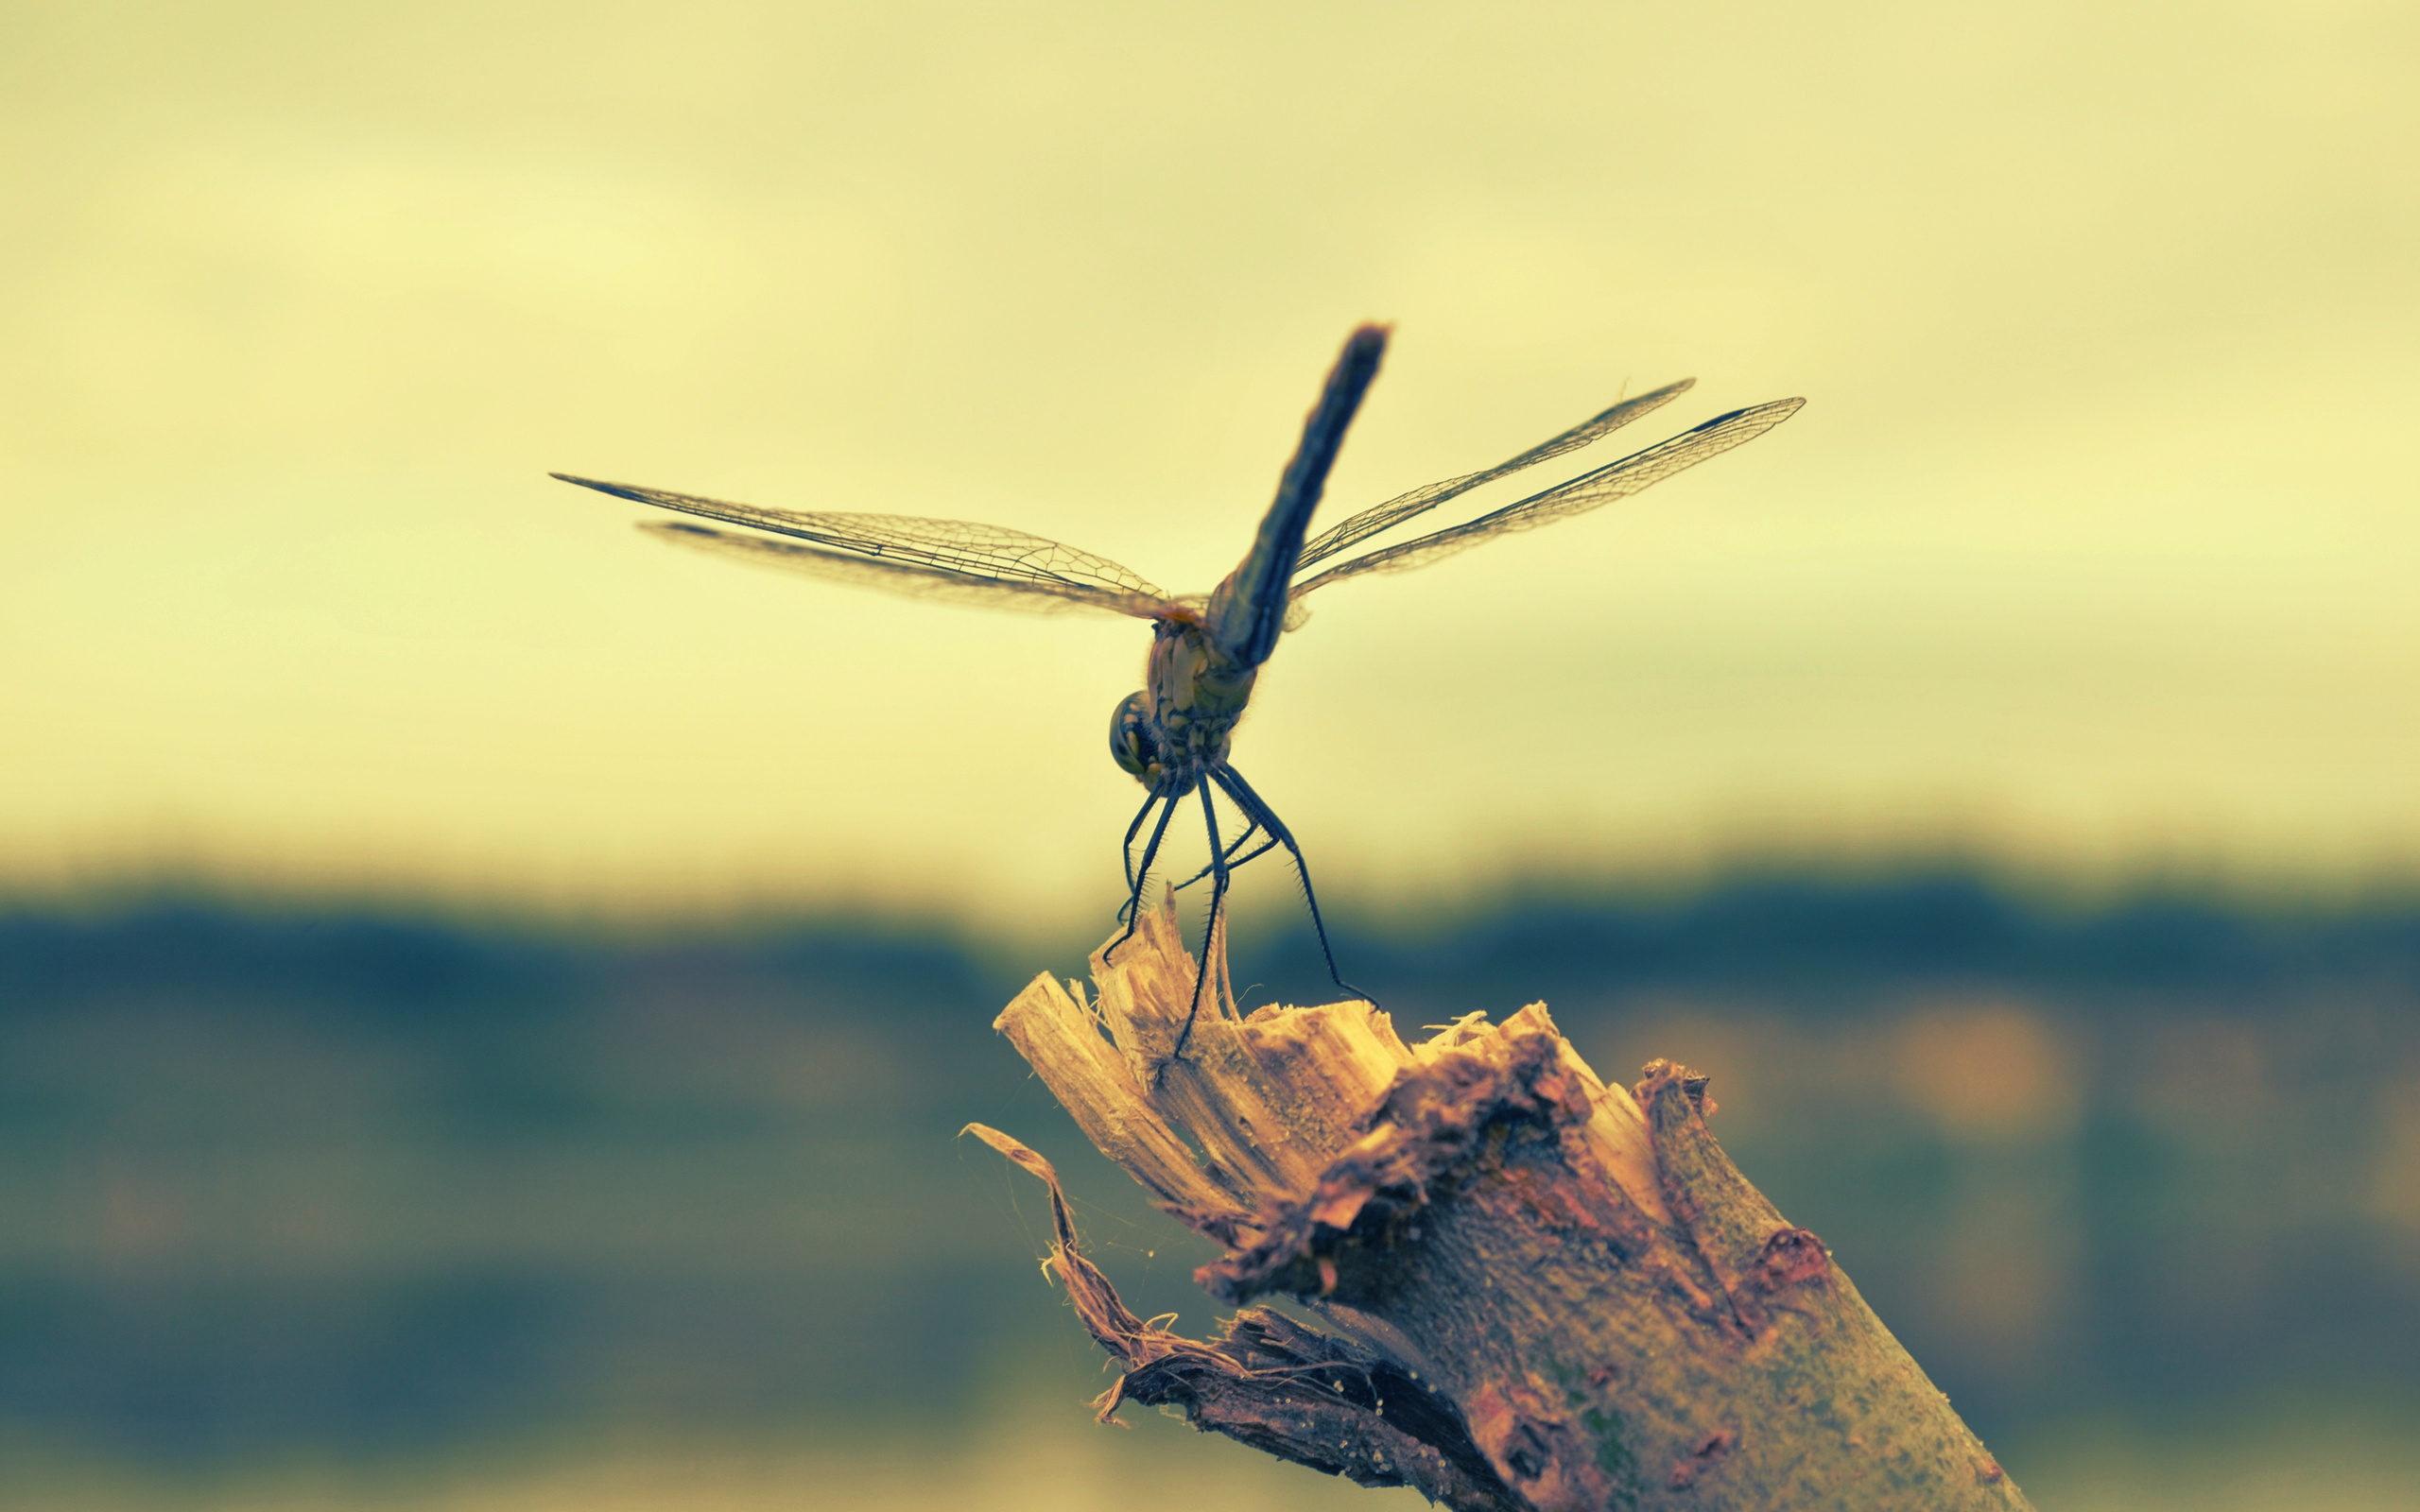 Dragonfly Backgrounds Download 2560x1600